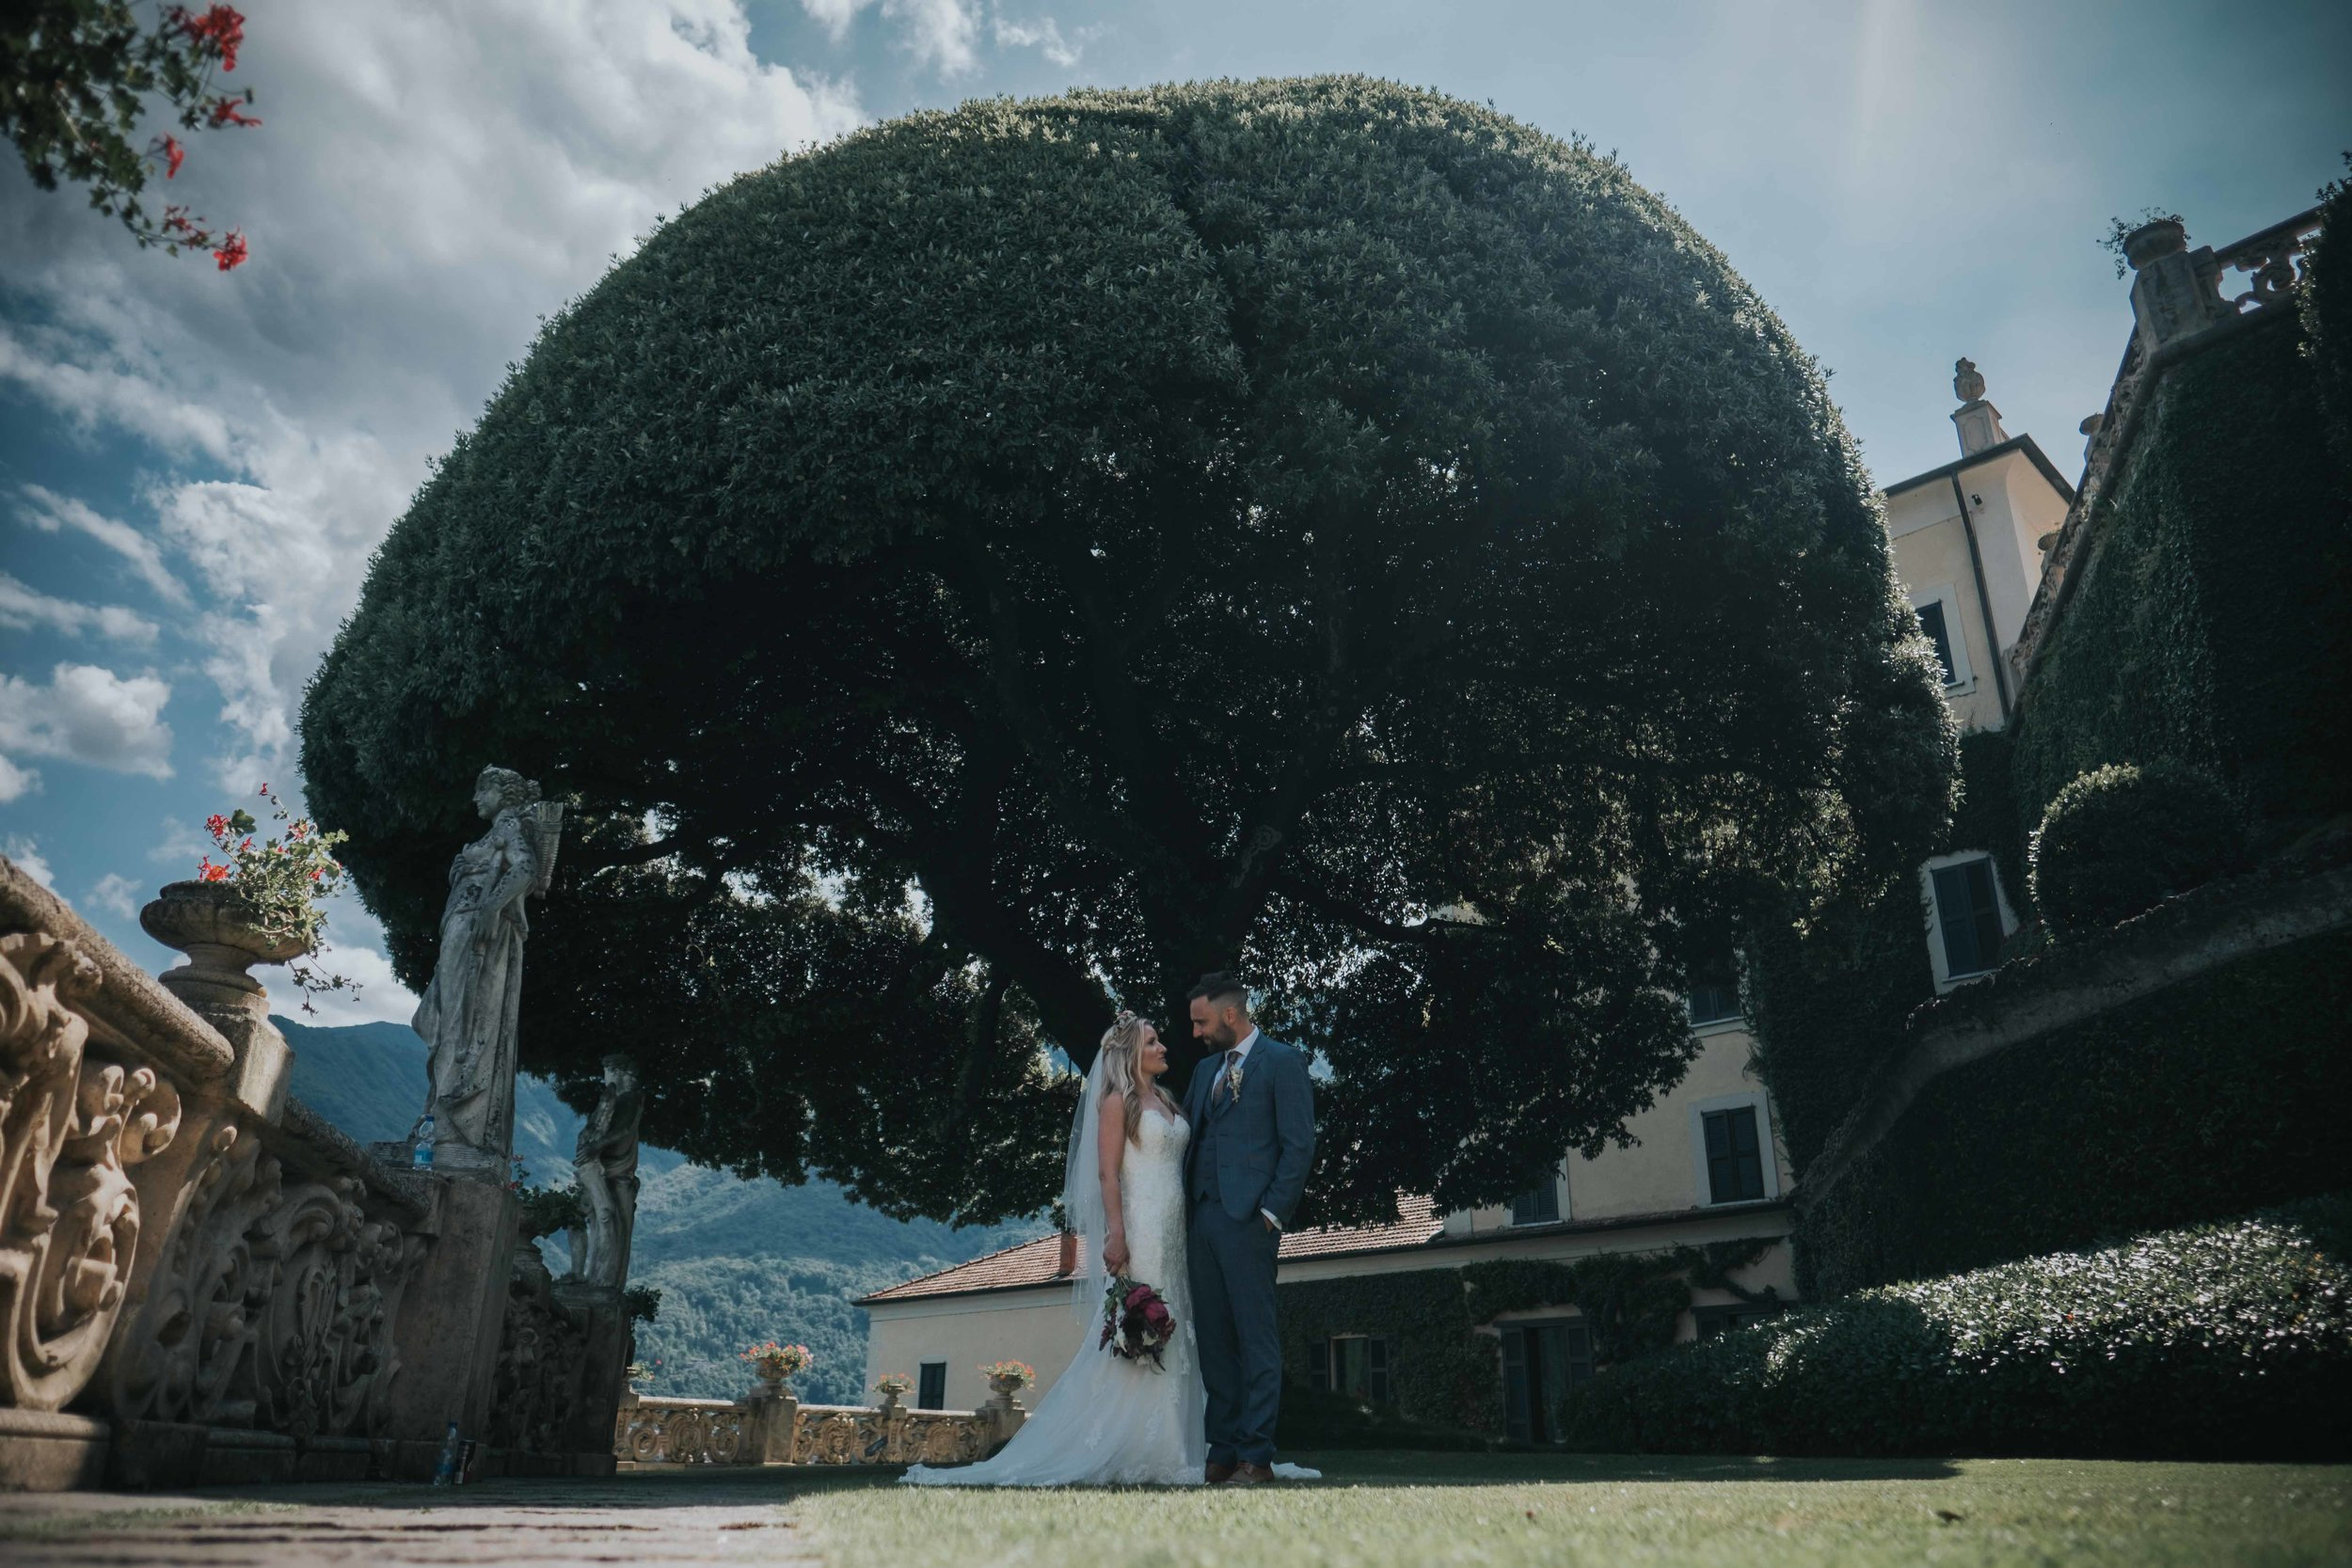 Laco Como Italy destination wedding photographer cheshire north west england documentry photography (63 of 117).jpg